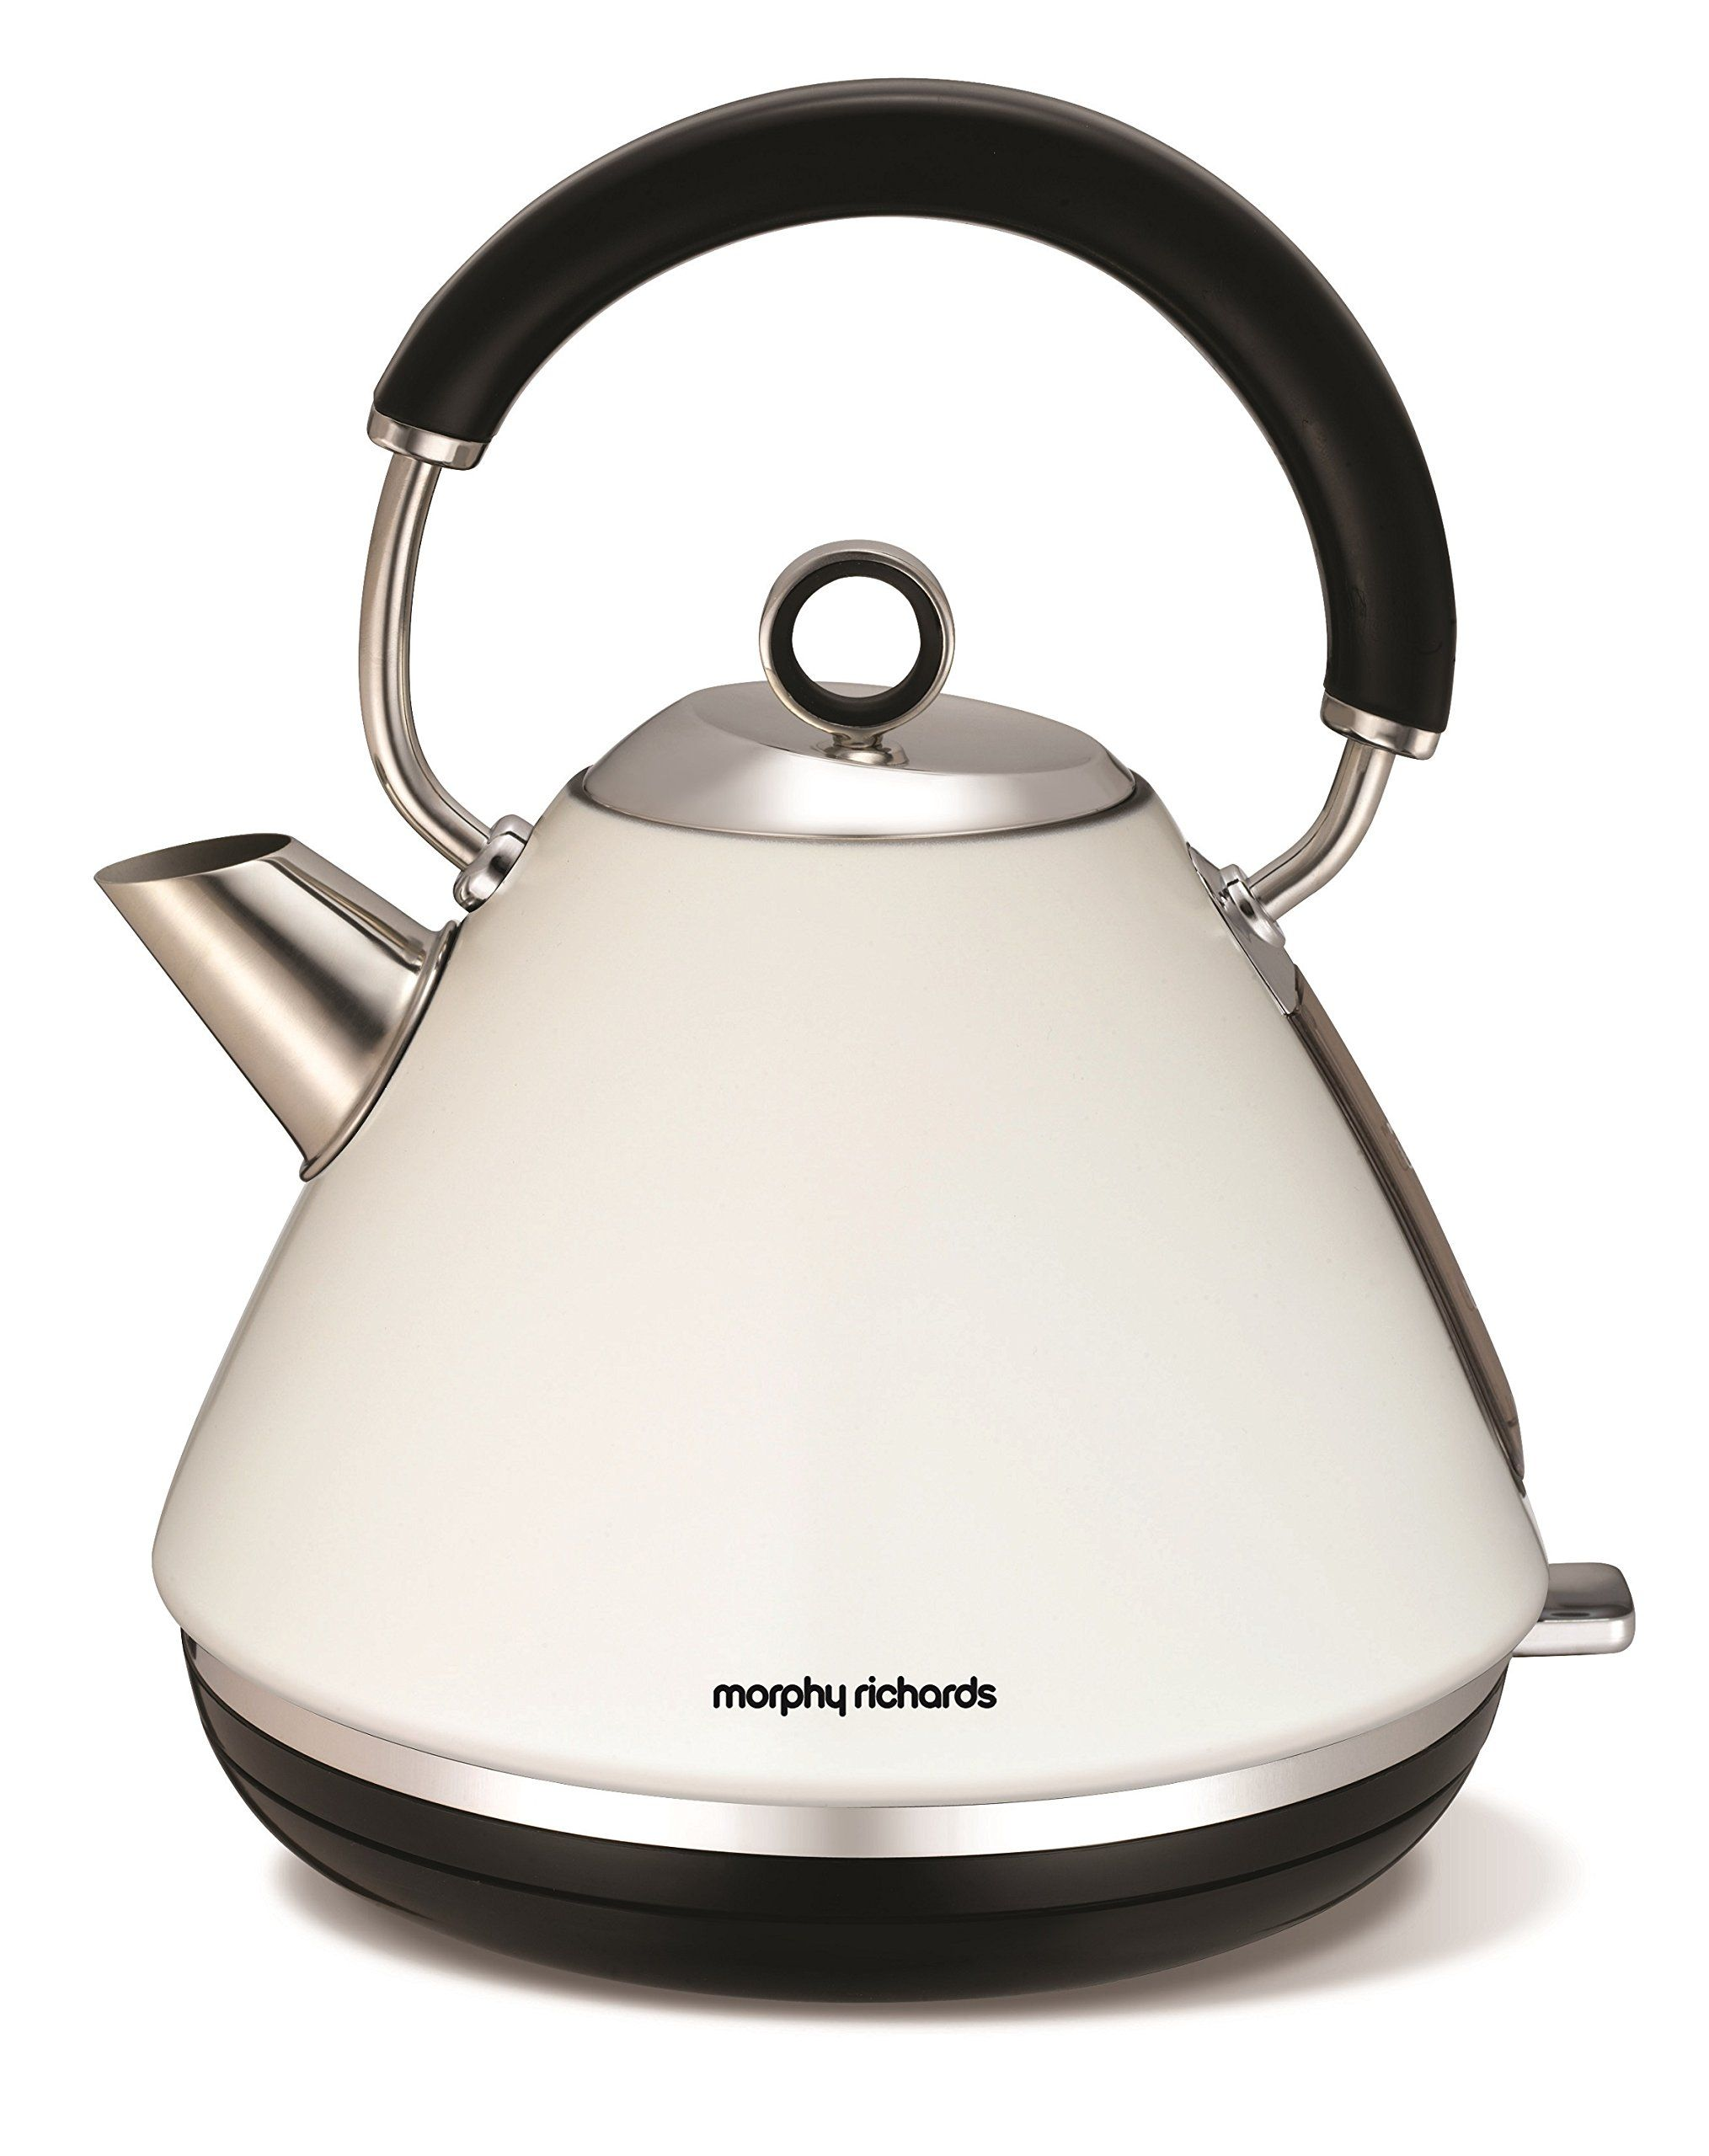 Morphy Richards 102005 Accents Pyramid Kettle White